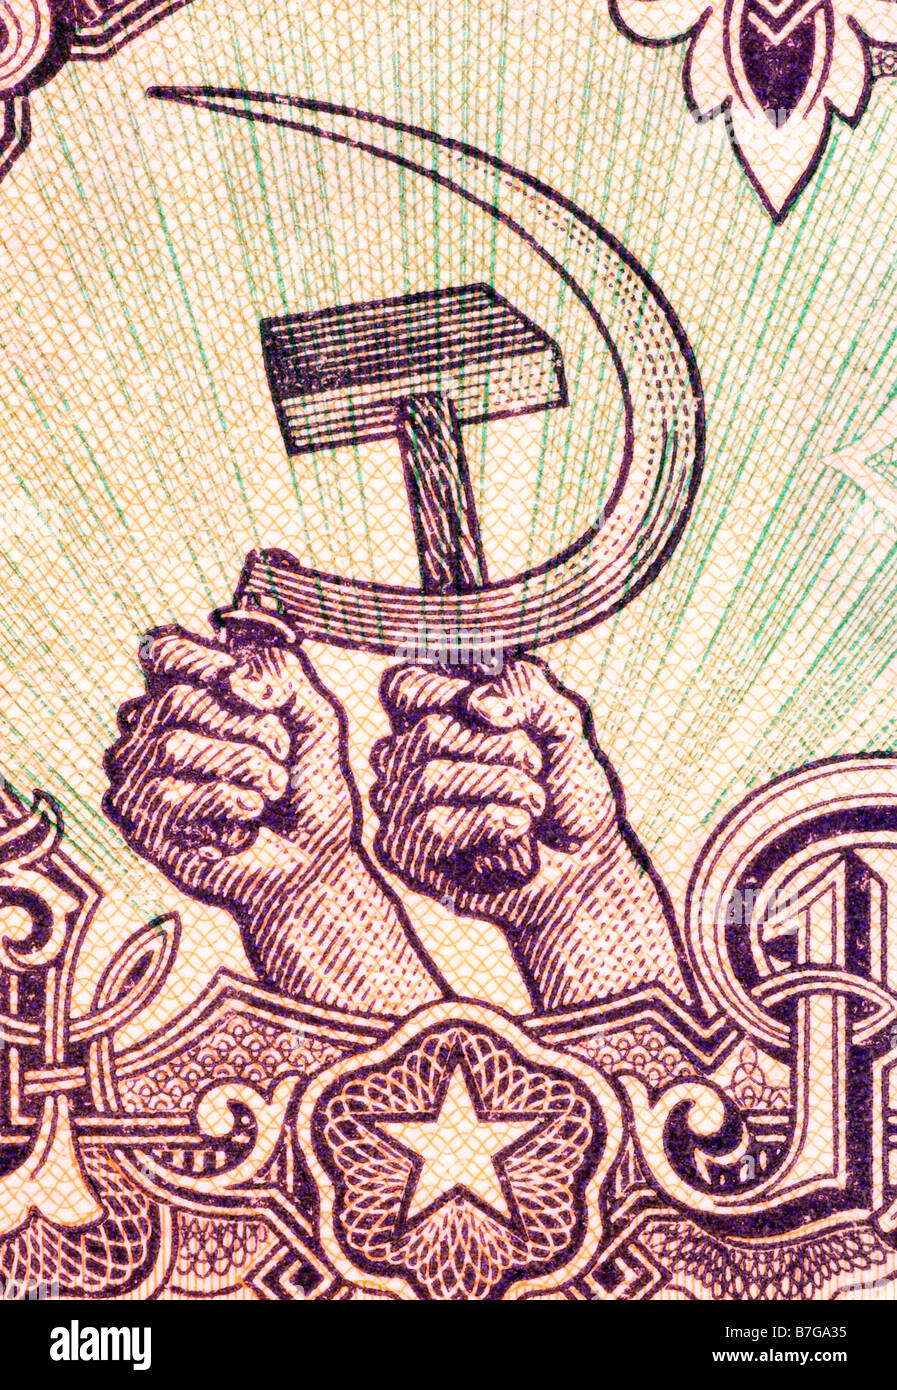 Hands holding hammer and sickle - Stock Image